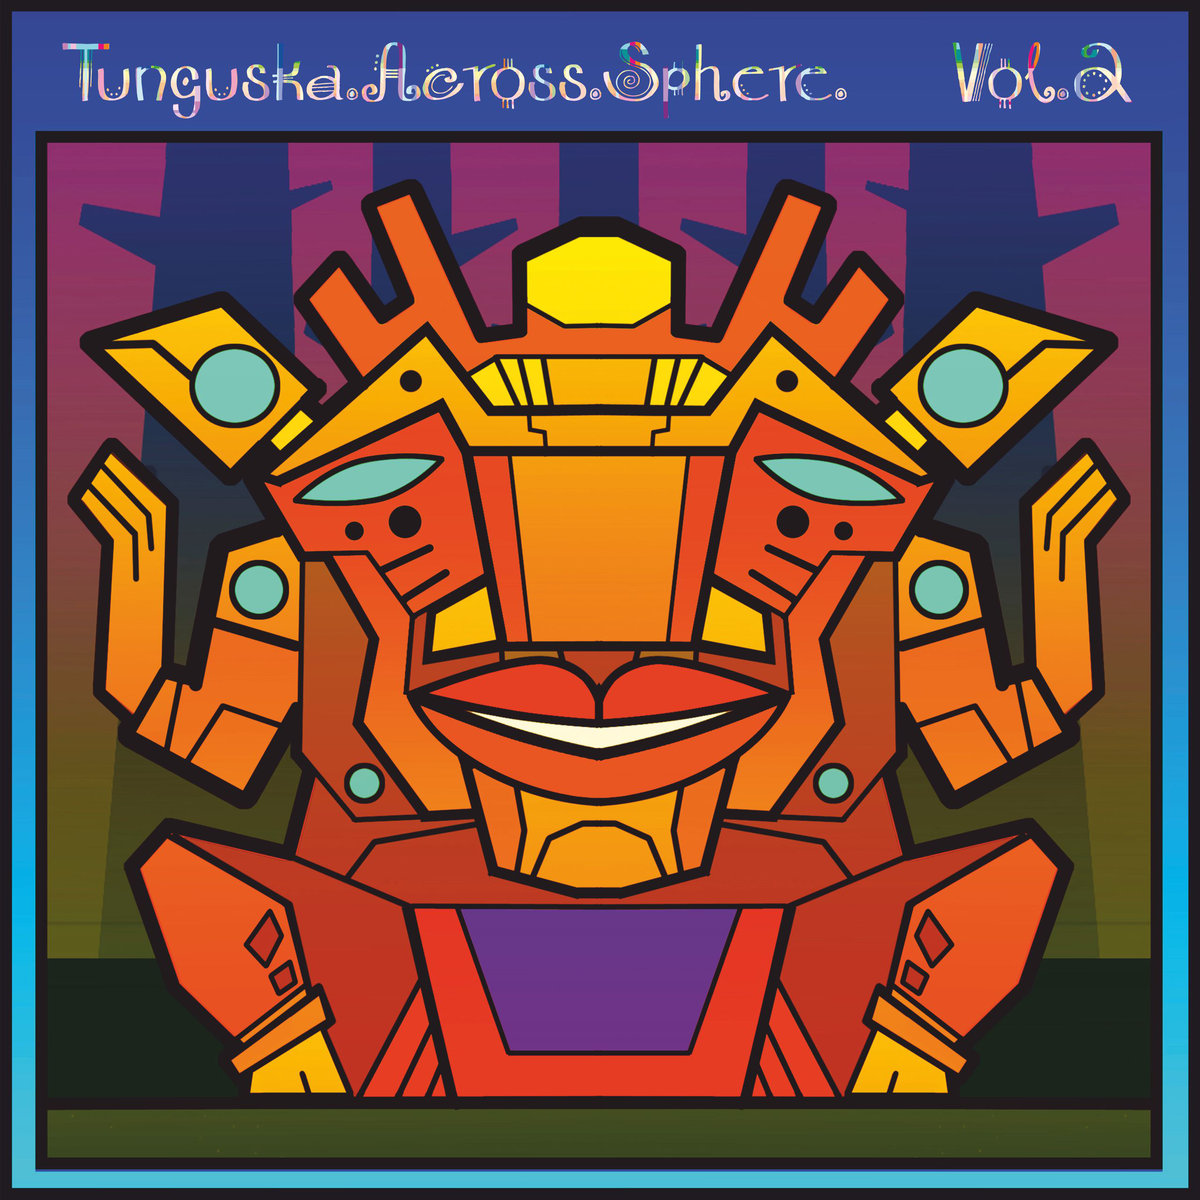 VSTGuru - Feels Like Heaven @ 'Ellipsis II - Tunguska.Across.Sphere. Vol.2' album (electronic, ambient)